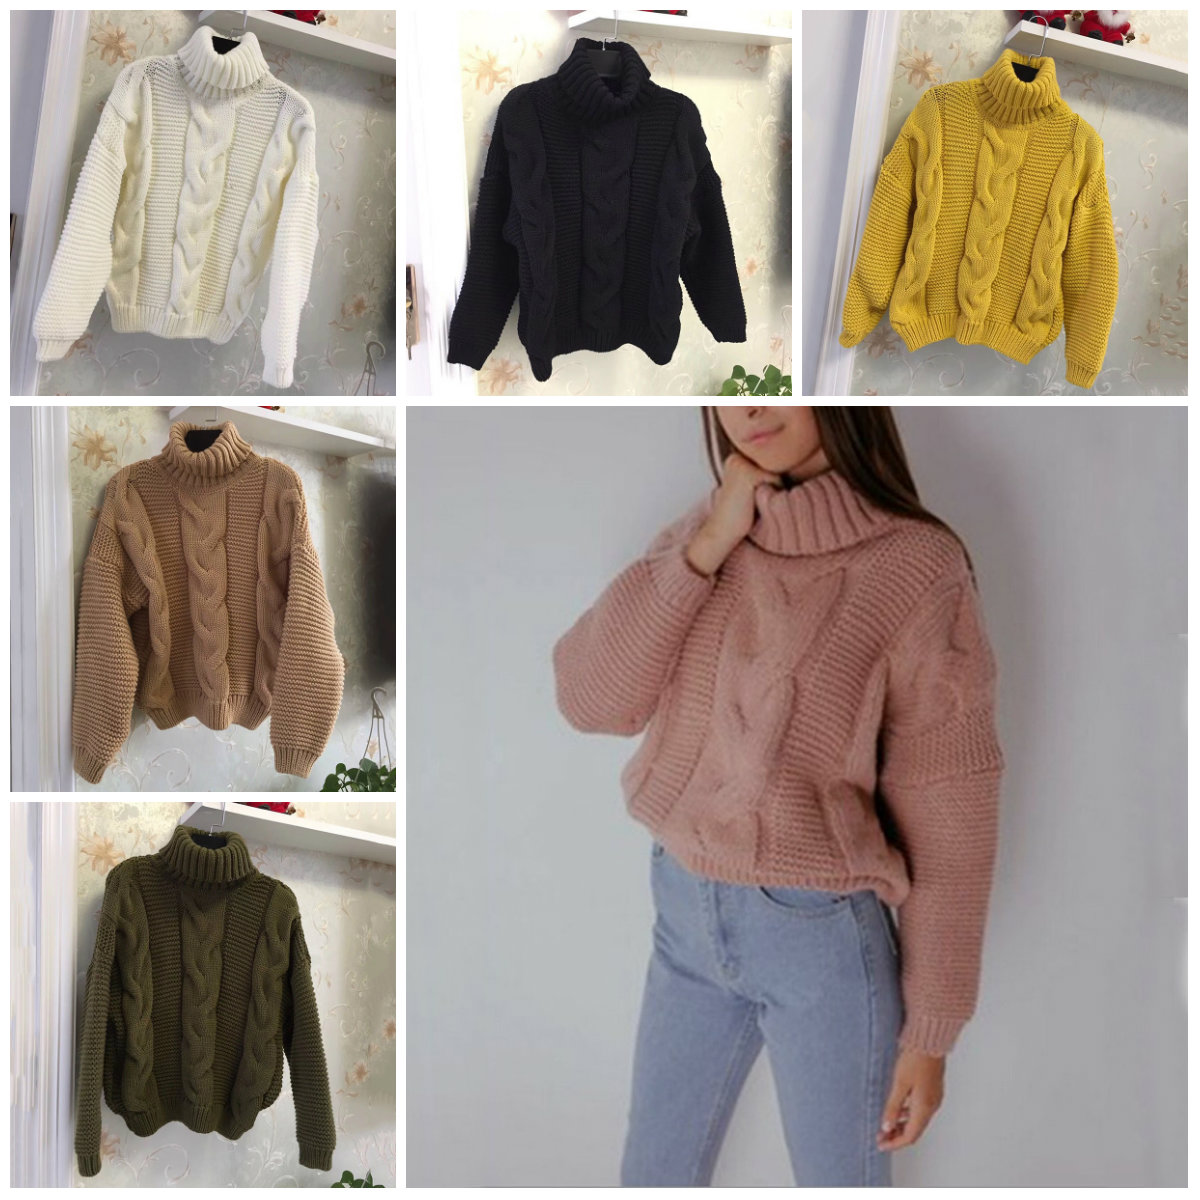 Sweaters Women's Autumn Winter Thickened Knits Korean Style Turtlenek Wear Lazy Neck Short Wind Pullover Tops Beige Brown